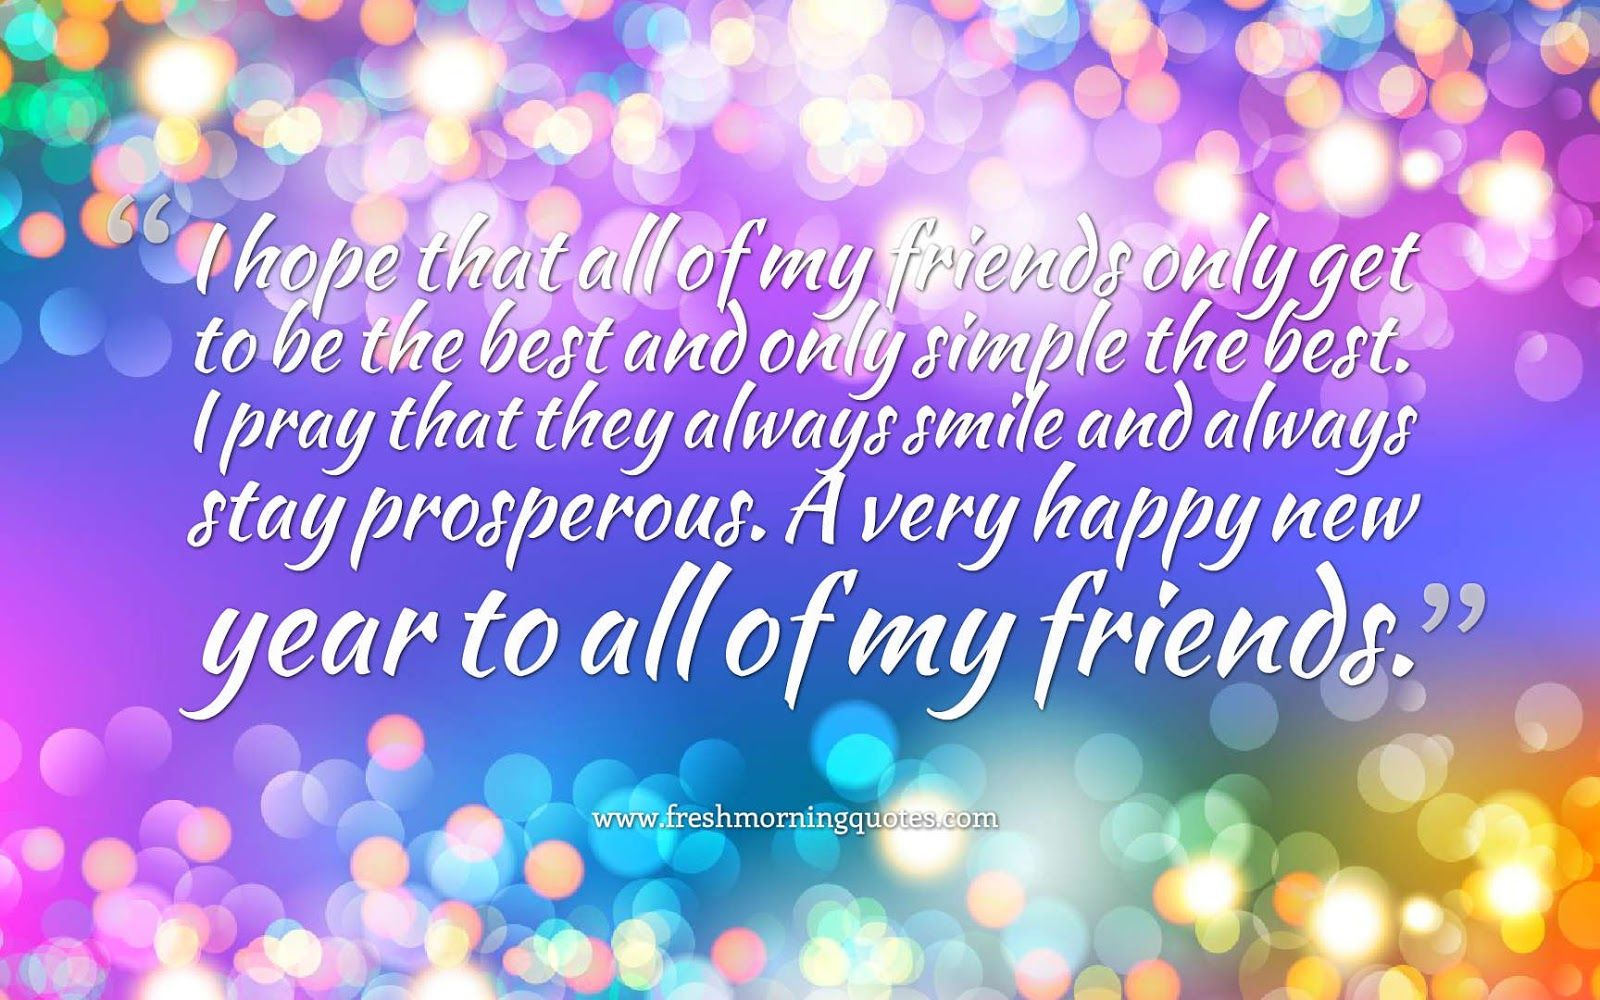 Happy New Year 2019 Quotes For Best Friend Pinterest thumbnail